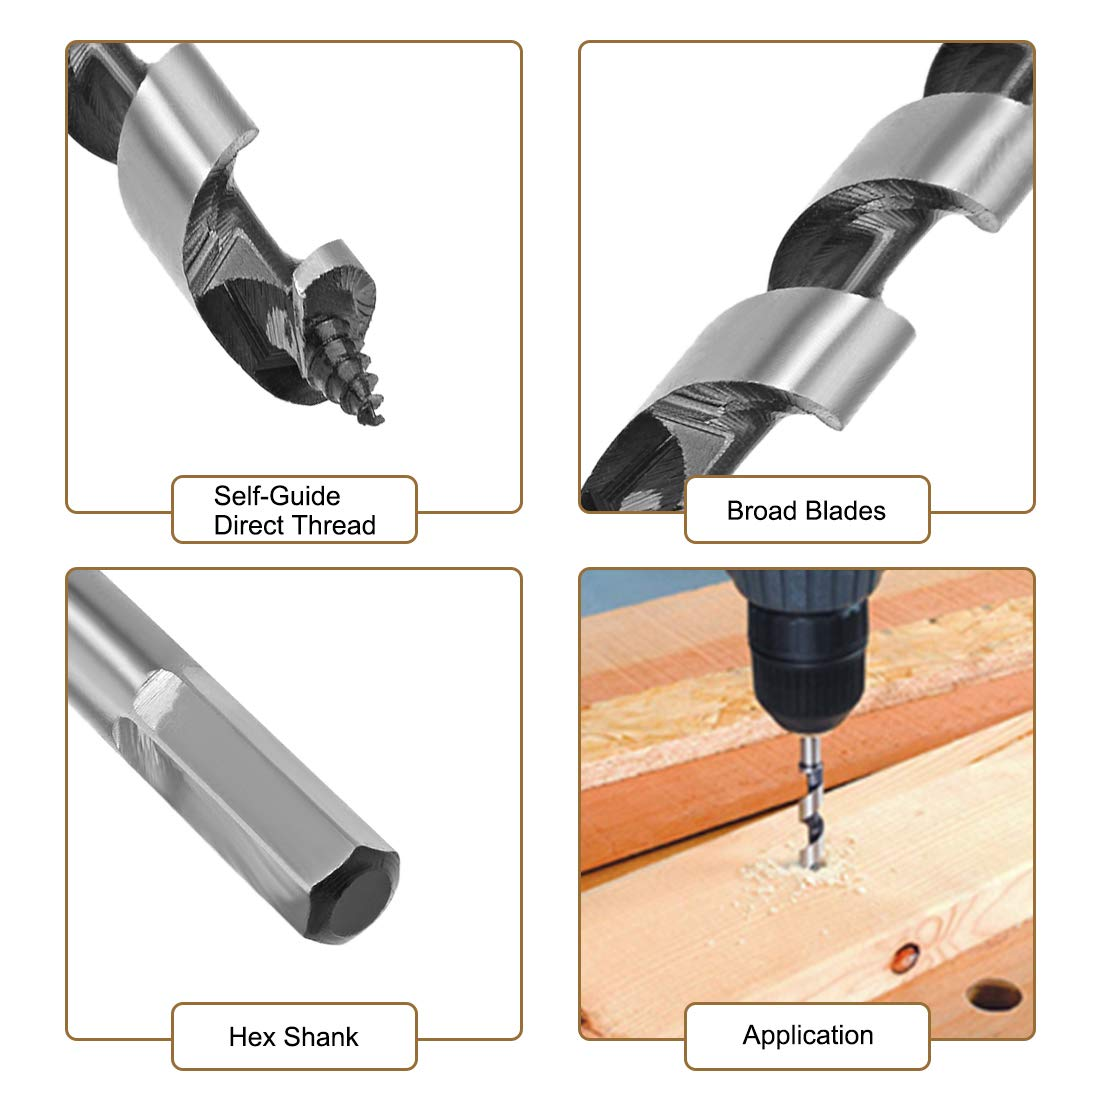 uxcell Auger Drill Bit Wood Hex Shank 10mm Cutting Dia High Carbon Steel for Electric Bench Drill Woodworking Carpentry